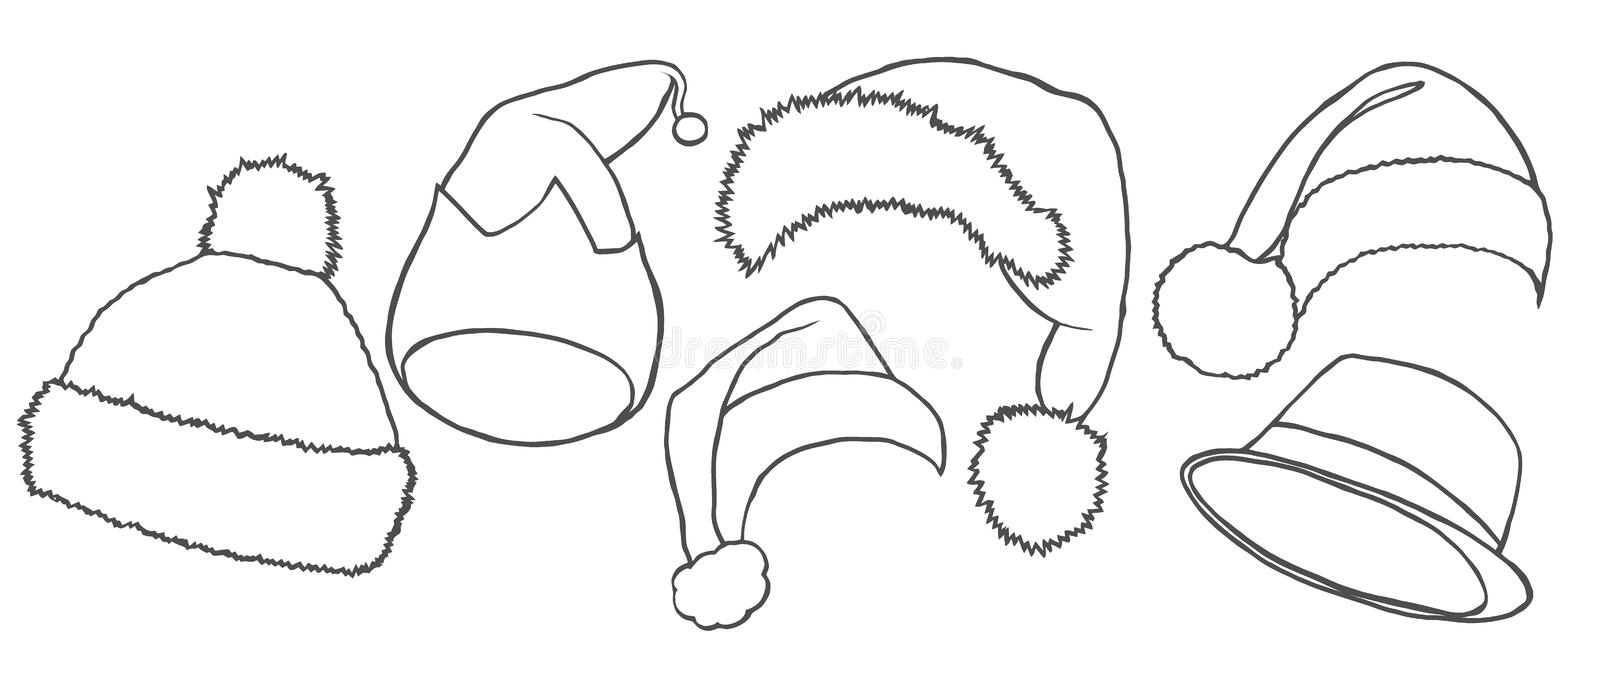 Santa hats vector. Pencil sketch icons. New Year and Christmas decoration elements royalty free illustration